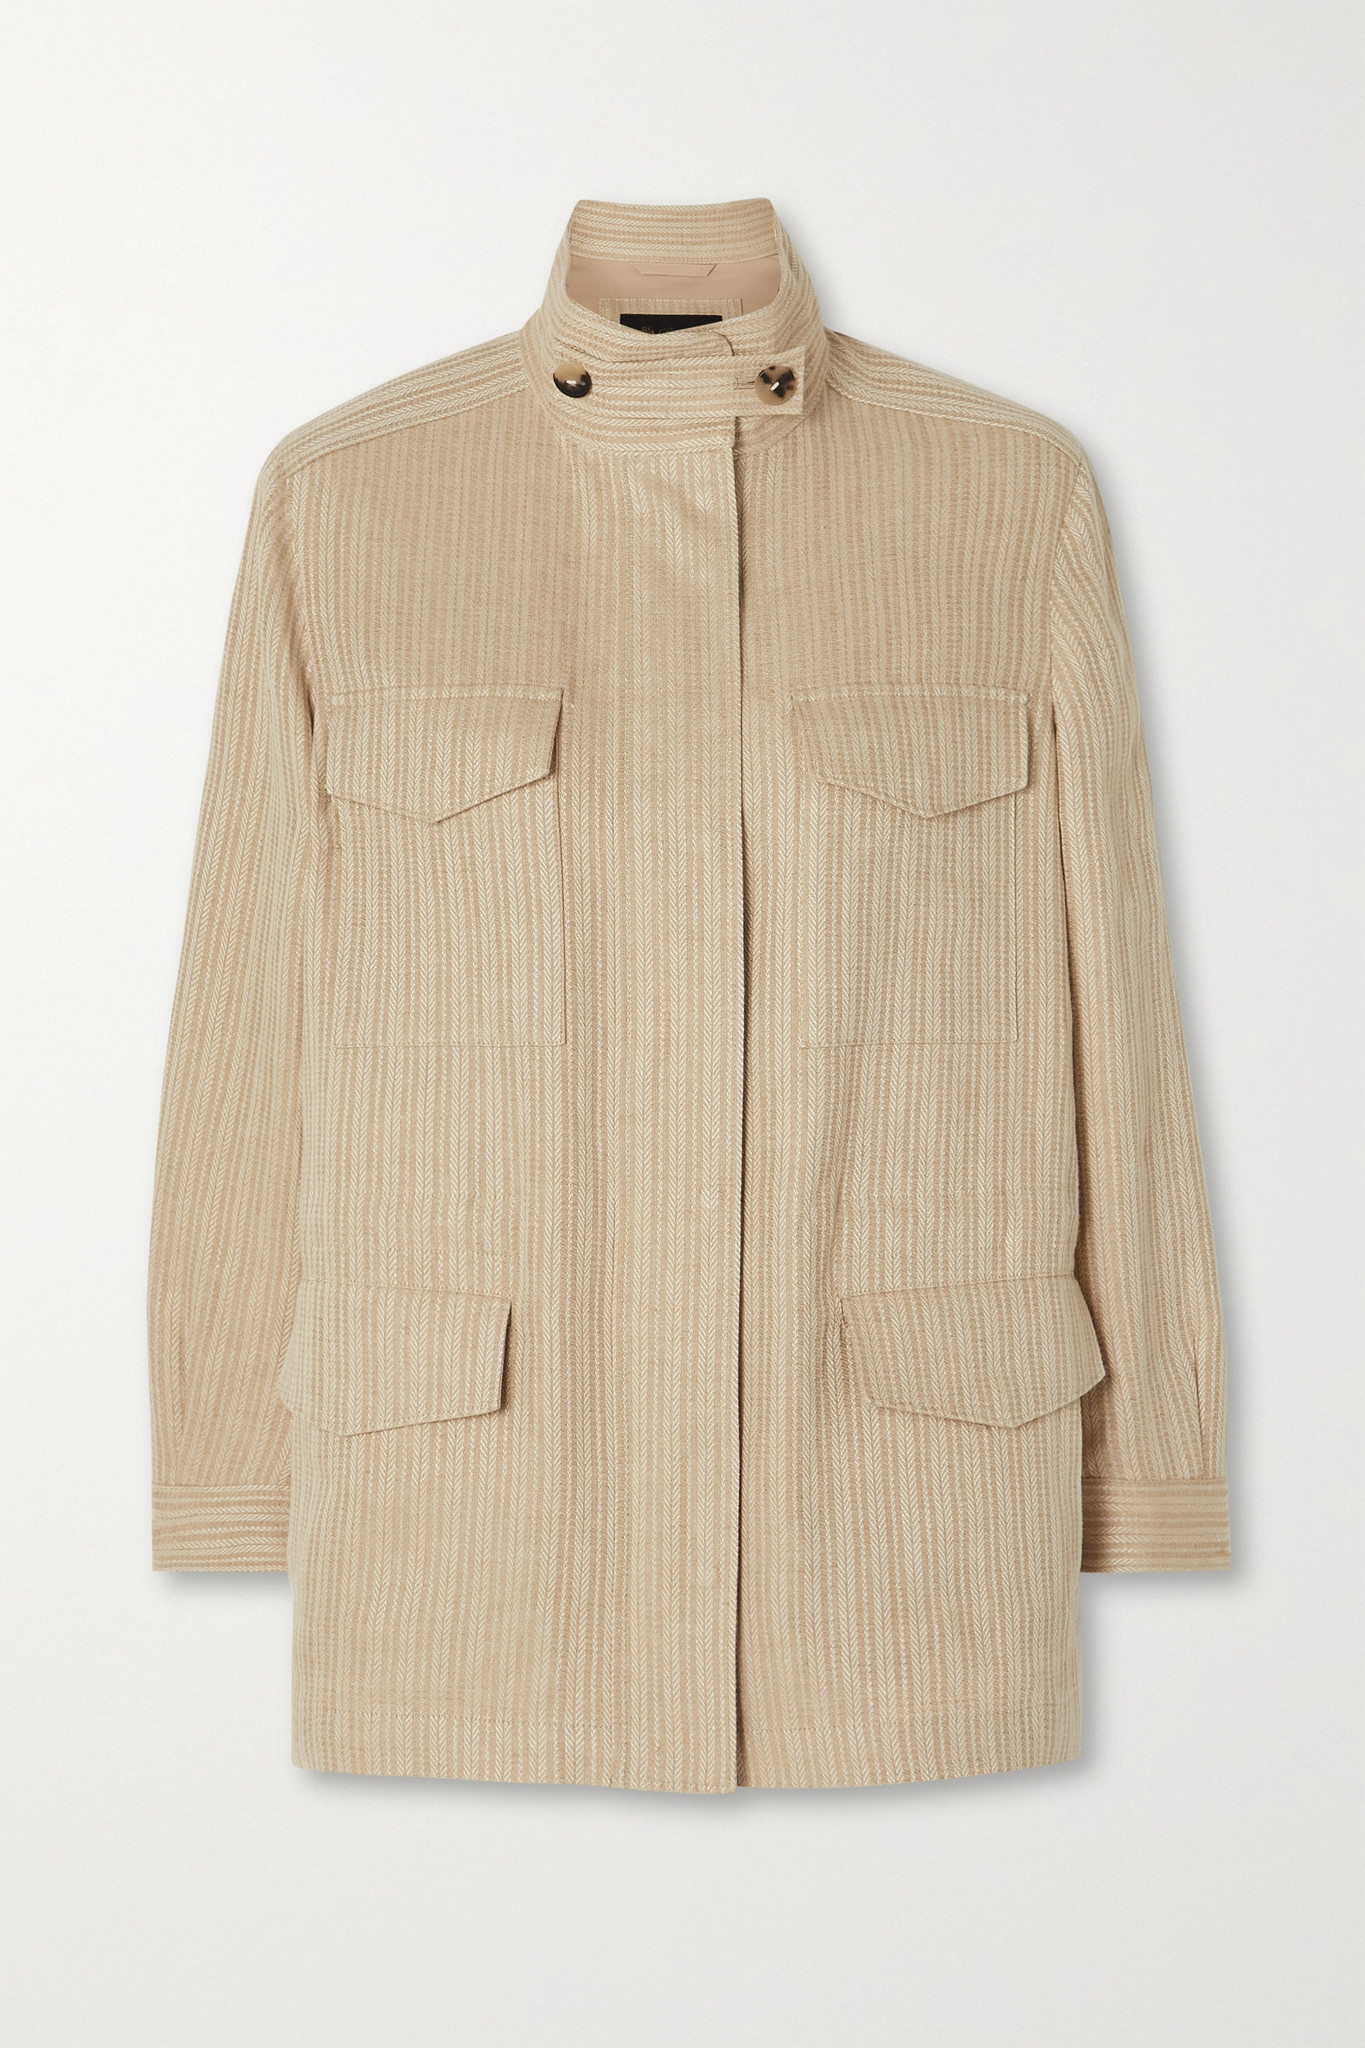 LORO PIANA - Traveller Herringbone Linen Jacket - Neutrals - medium